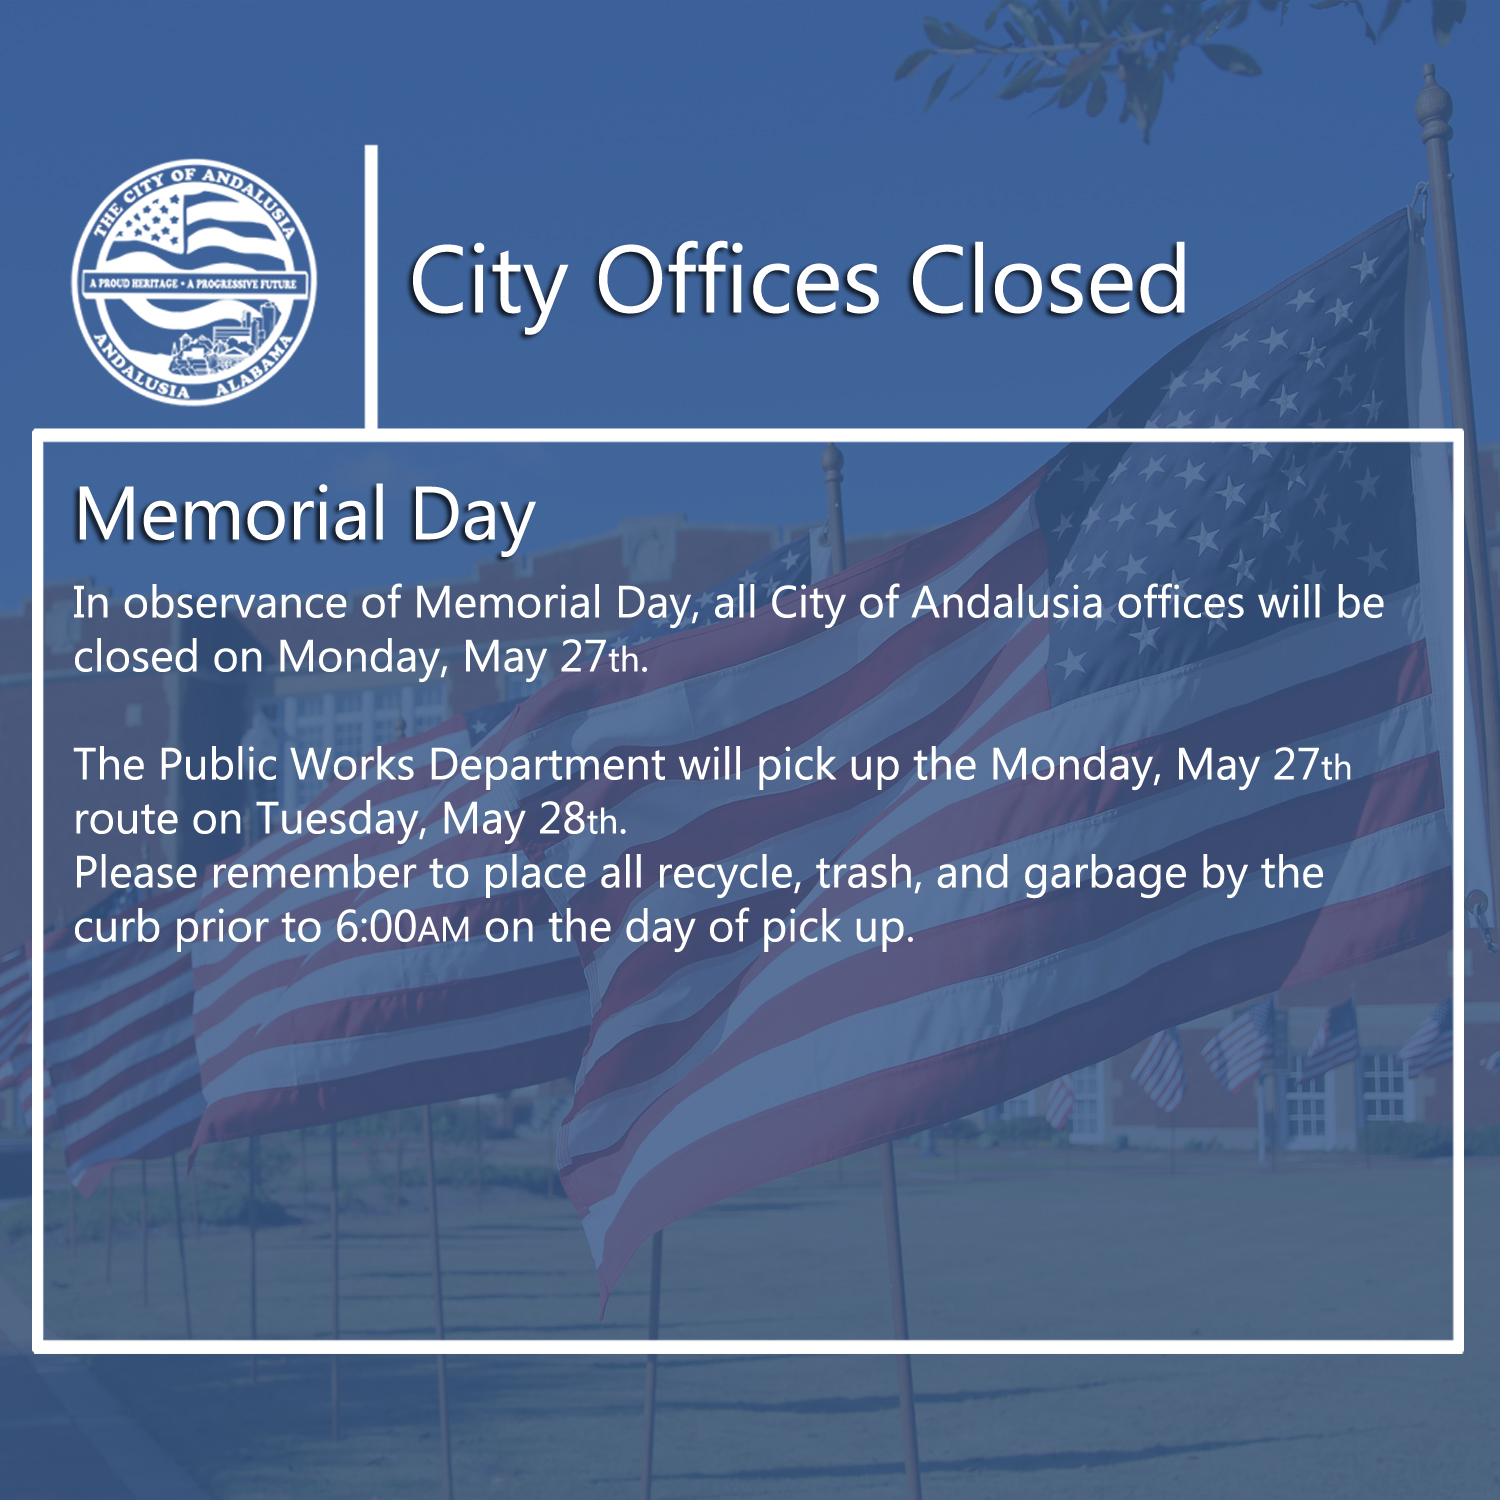 Facebook City Offices Closed Memorial